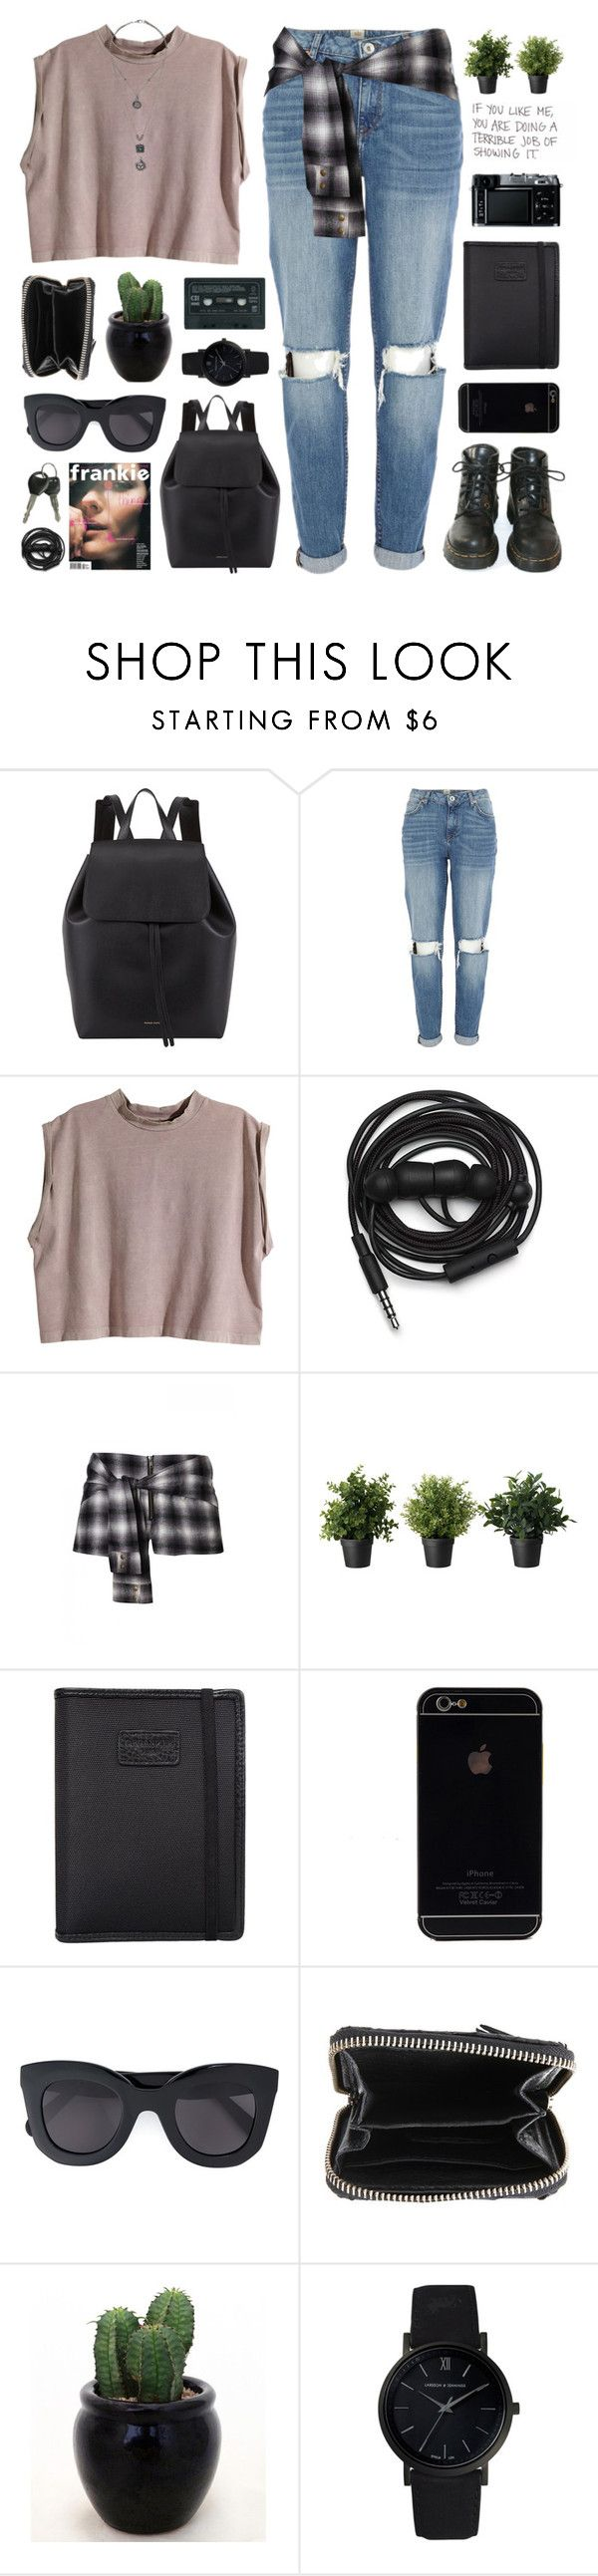 """Audrey"" by chelseapetrillo ❤ liked on Polyvore featuring Mansur Gavriel, River Island, H&M, Dr. Martens, Urbanears, Nava, Retrò, CÉLINE, Zadig & Voltaire and Larsson & Jennings"